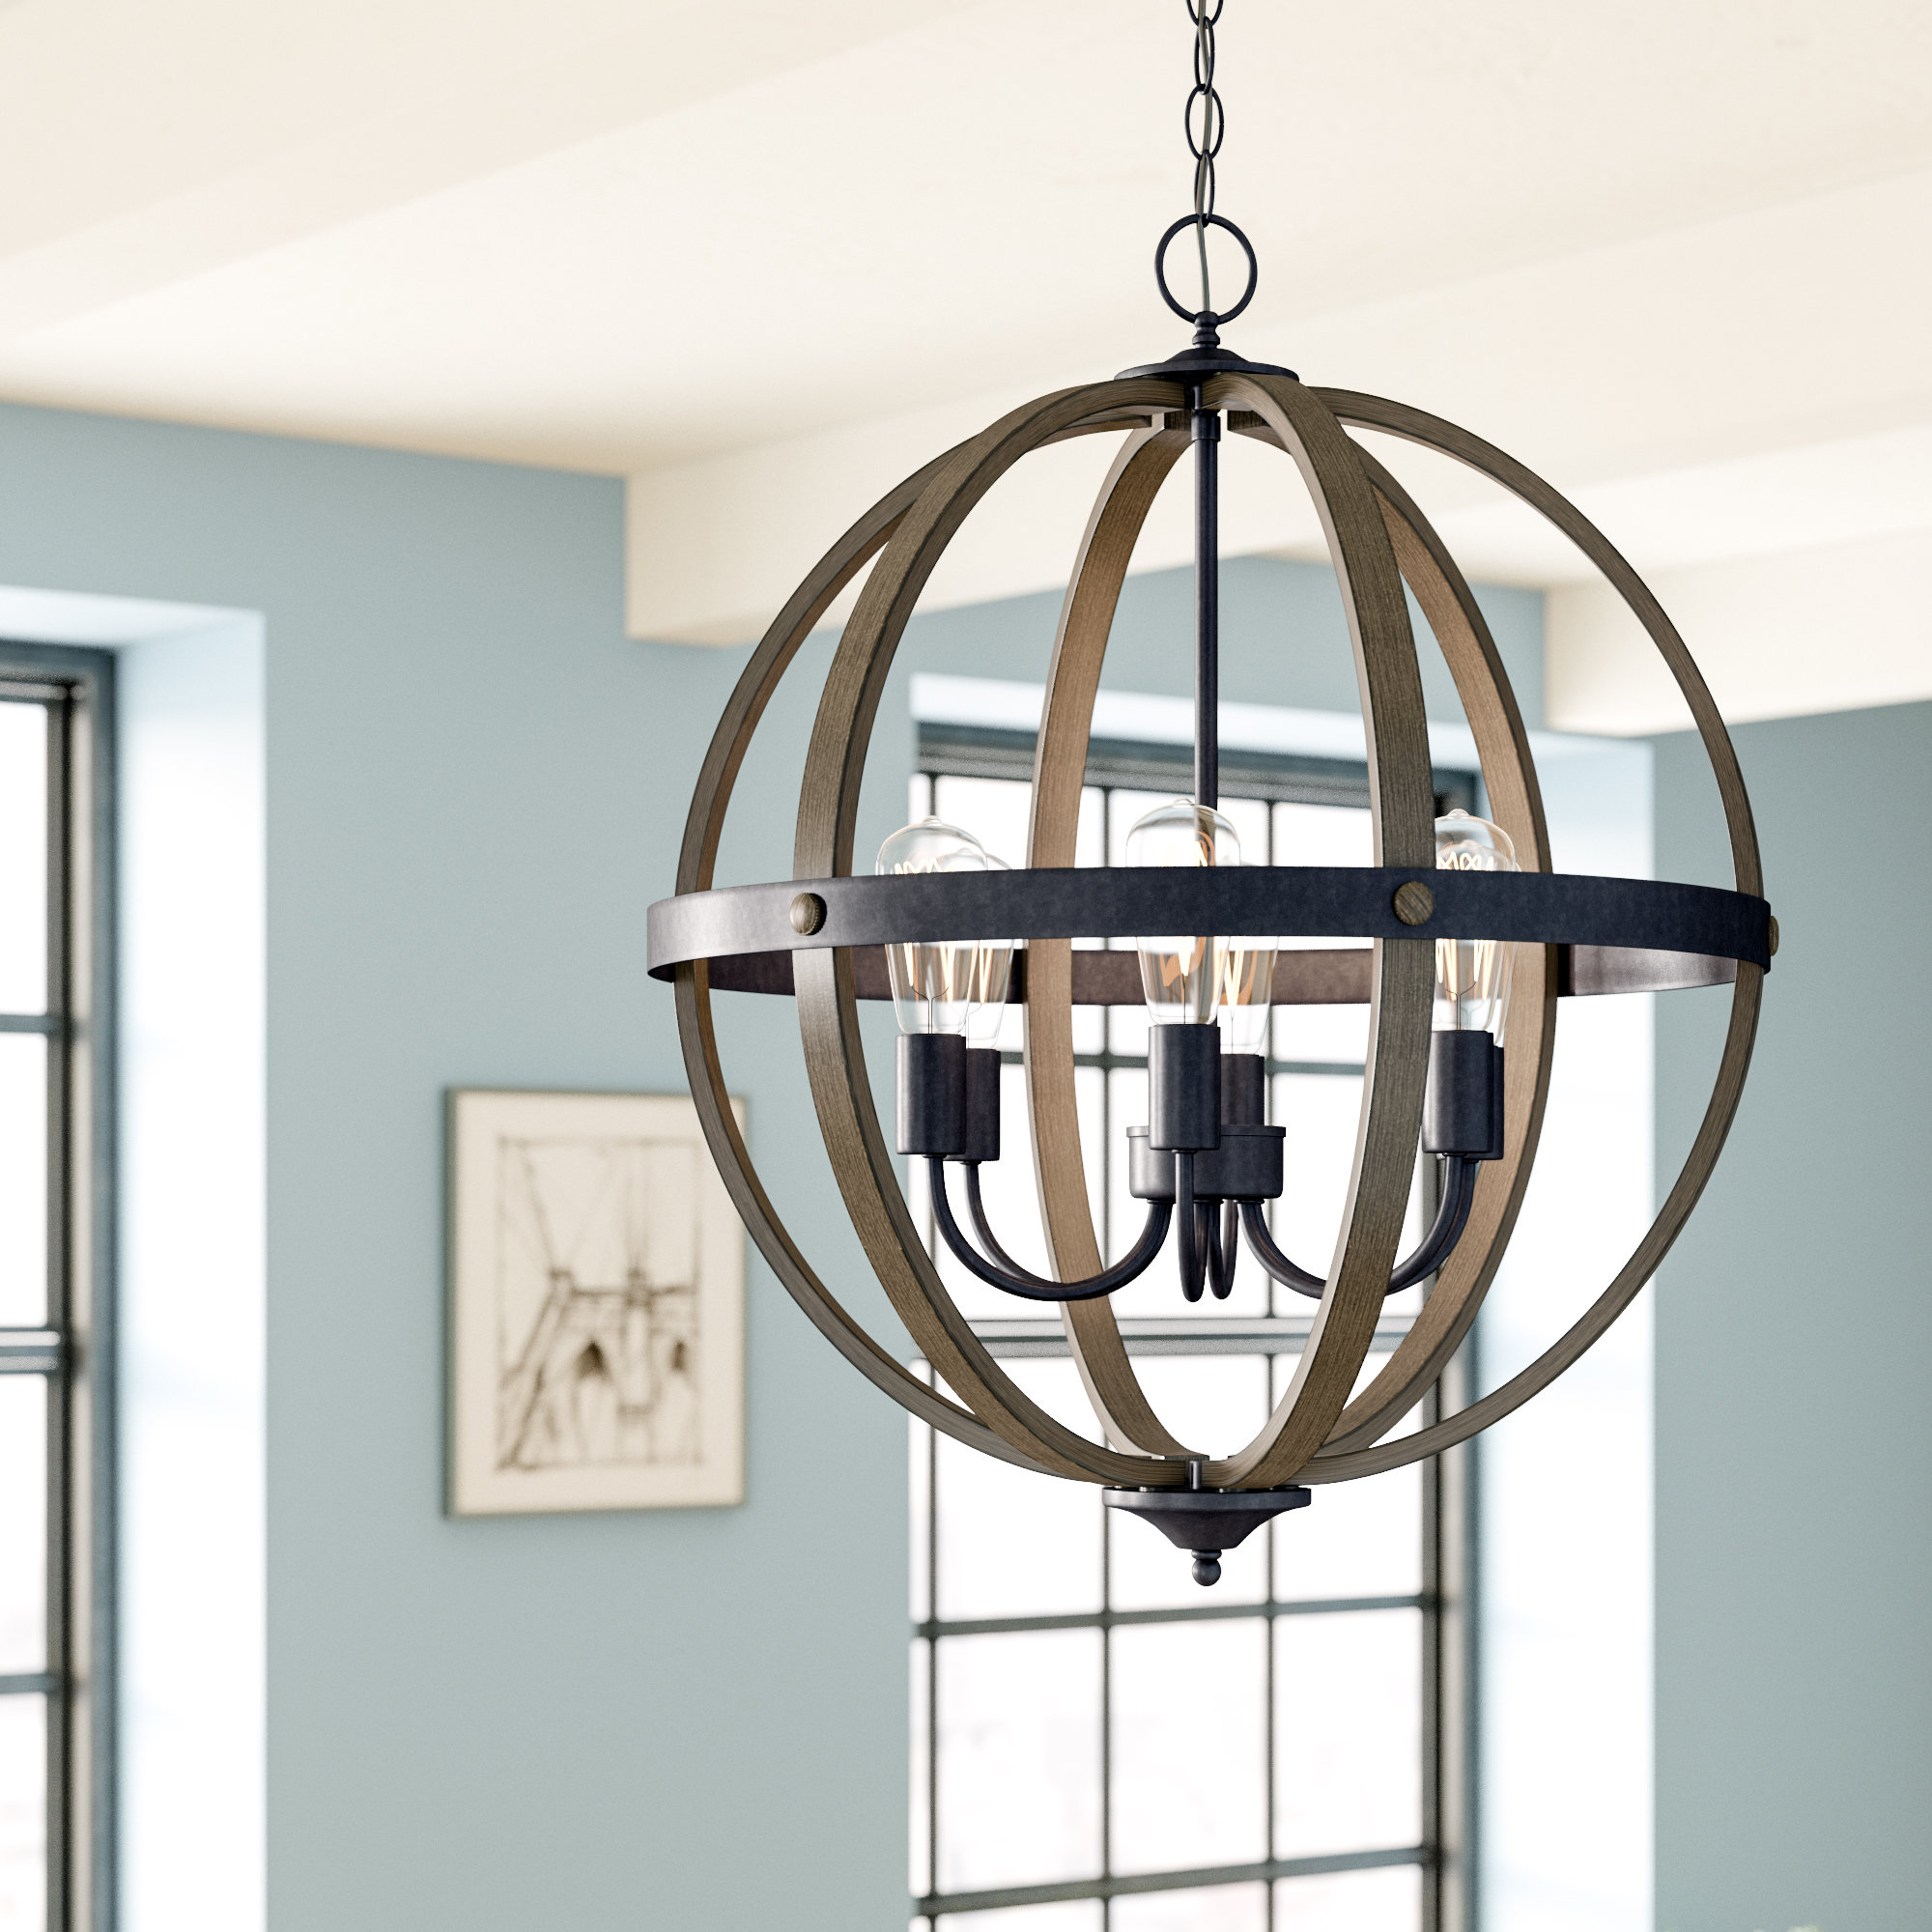 Globe Chandeliers Sale - Up To 65% Off Until September 30Th with regard to Shipststour 3-Light Globe Chandeliers (Image 14 of 30)